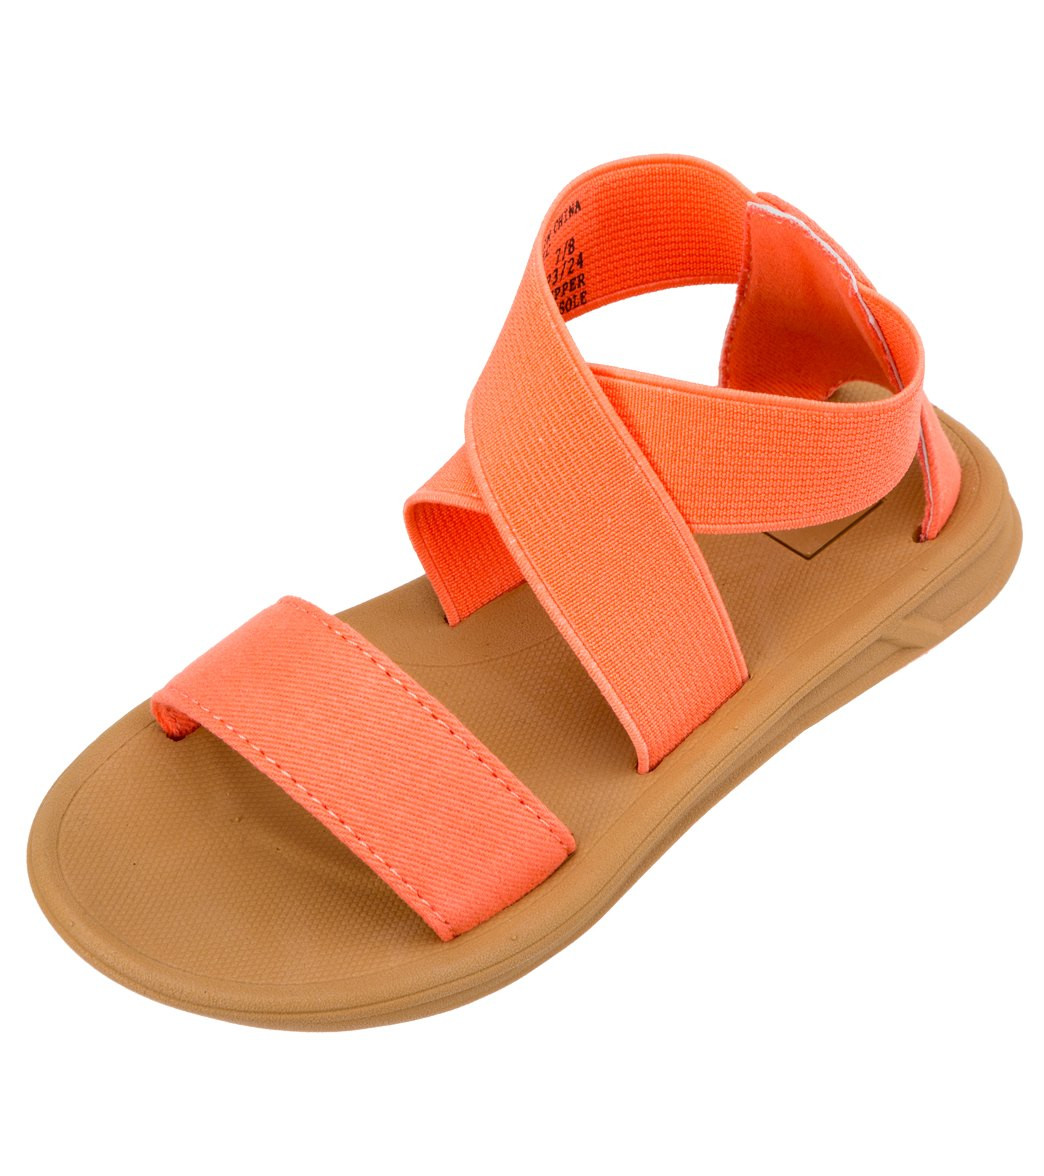 290f1b66128c Reef Girls  Little Rover Hi Sandal at SwimOutlet.com